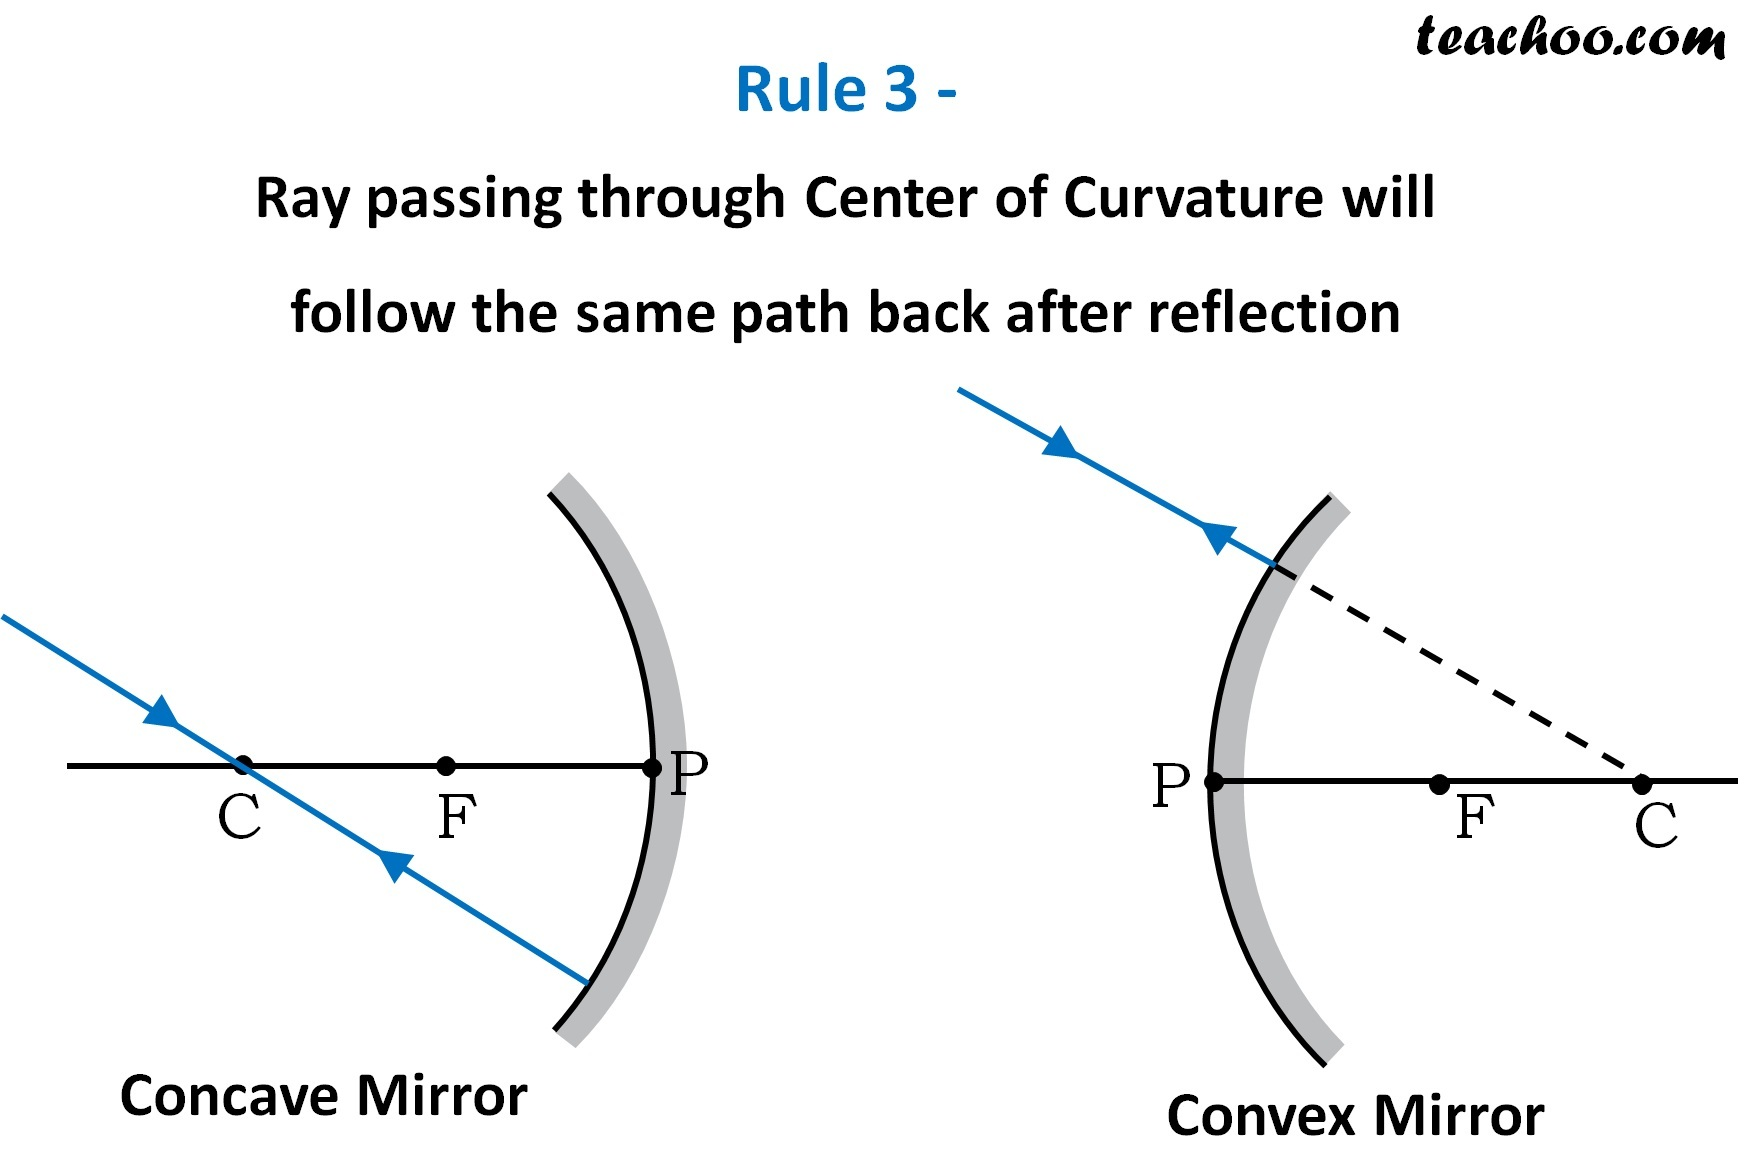 Rule 3 - Ray passing through Center of Curvature will follow the same path -Teachoo.jpg